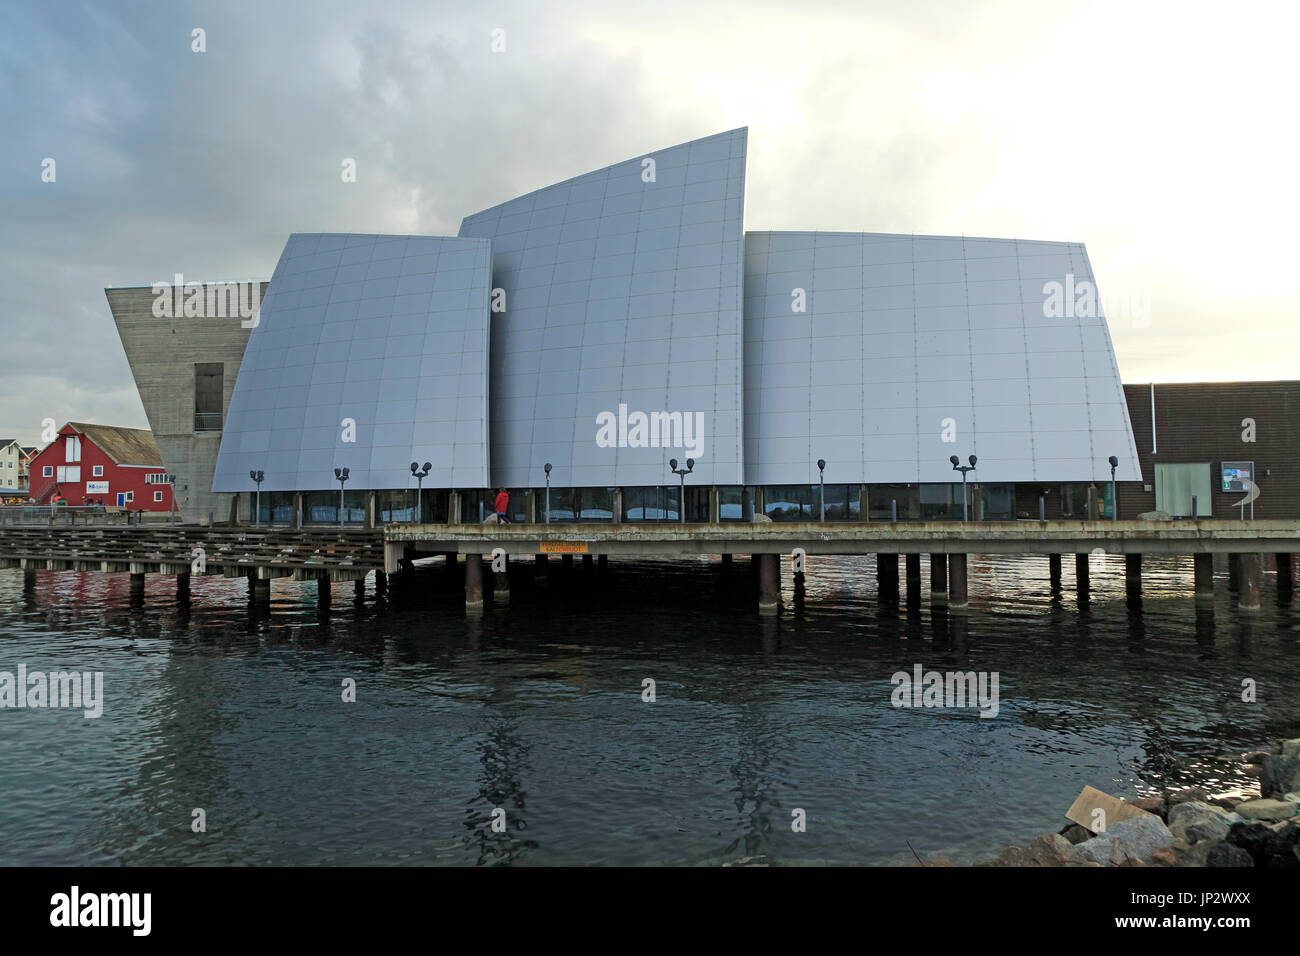 Norveg Coastal Museum in Rorvik, architect Gudmundur Jonnson, Norway built 2004 - Stock Image